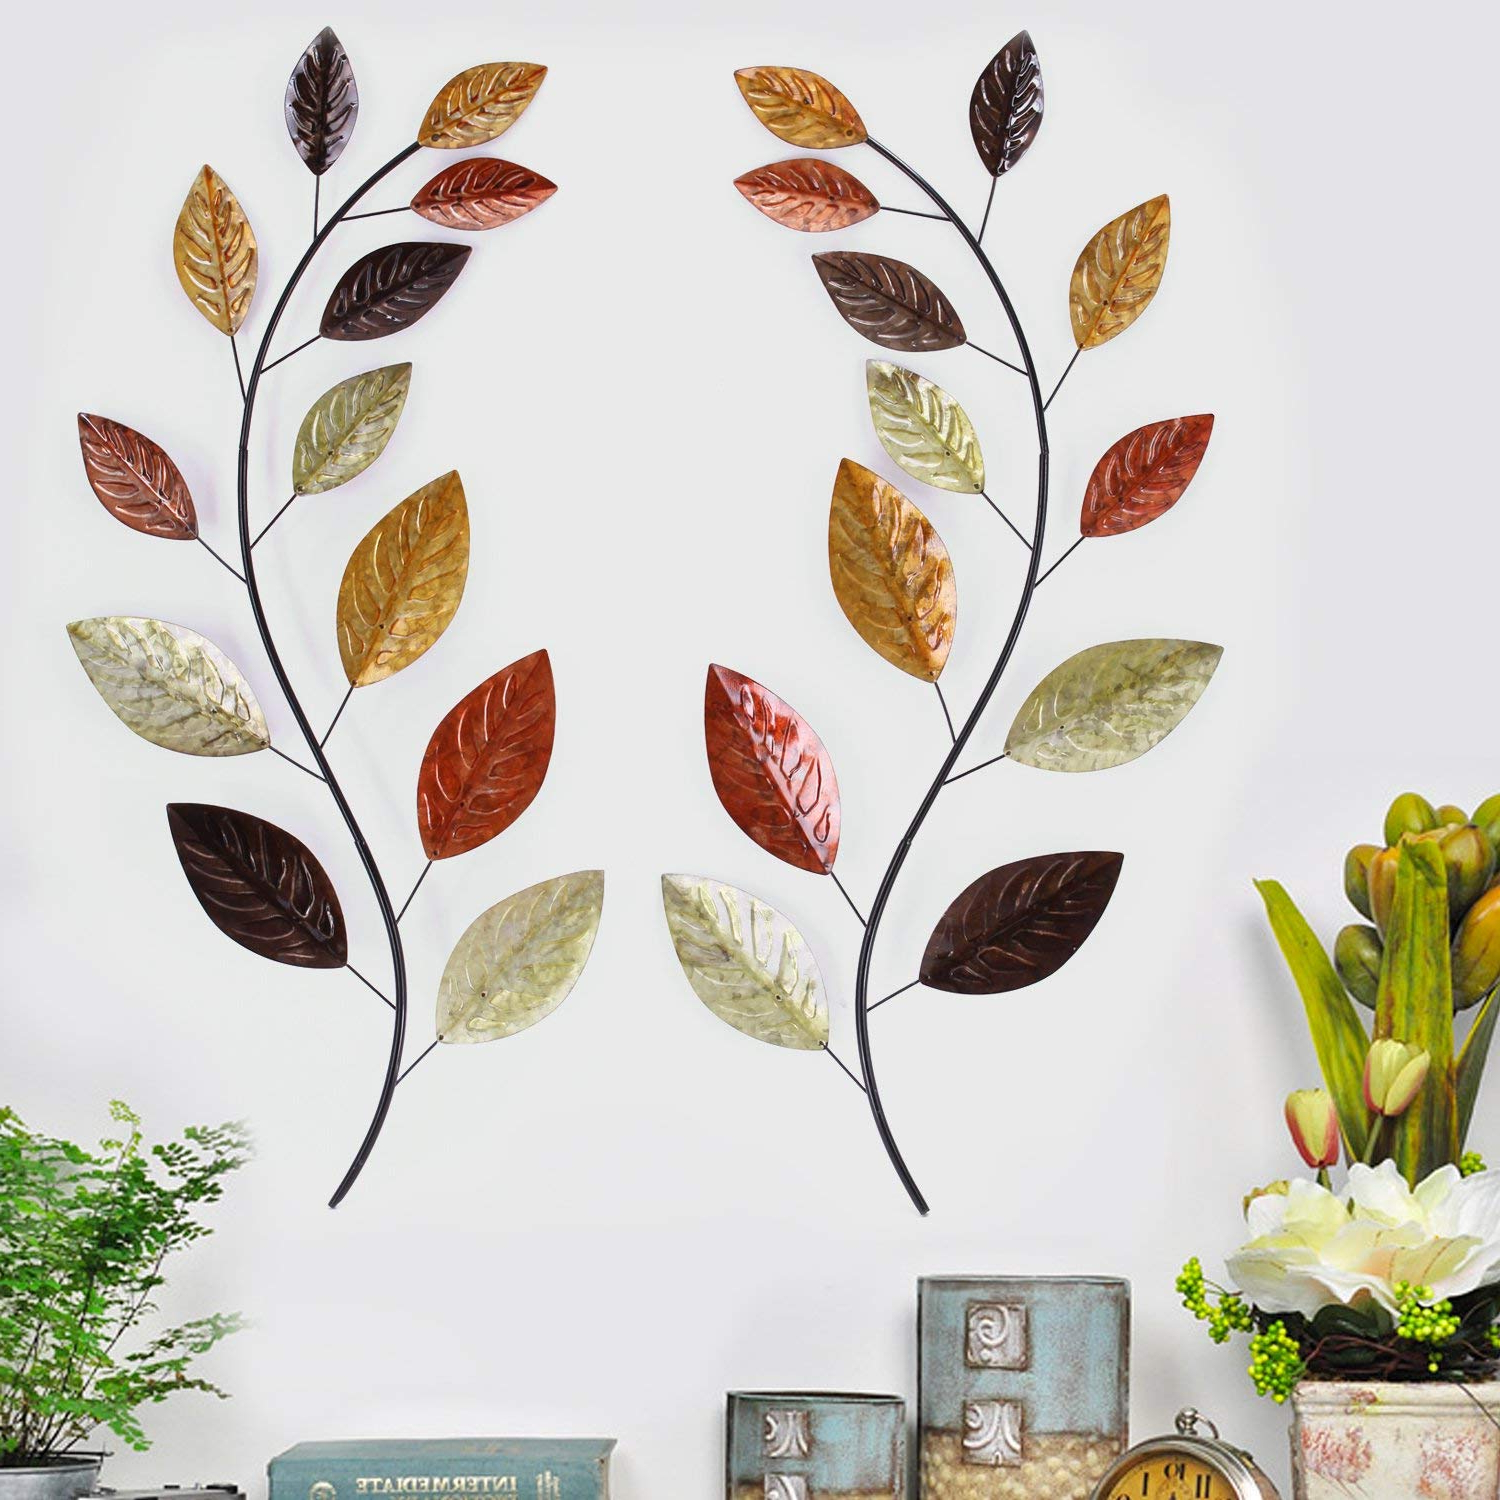 Amazon: Asense Tree Leaf Metal Wall Art Sculptures Home Decor In Famous 4 Piece Metal Wall Plaque Decor Sets (View 3 of 20)